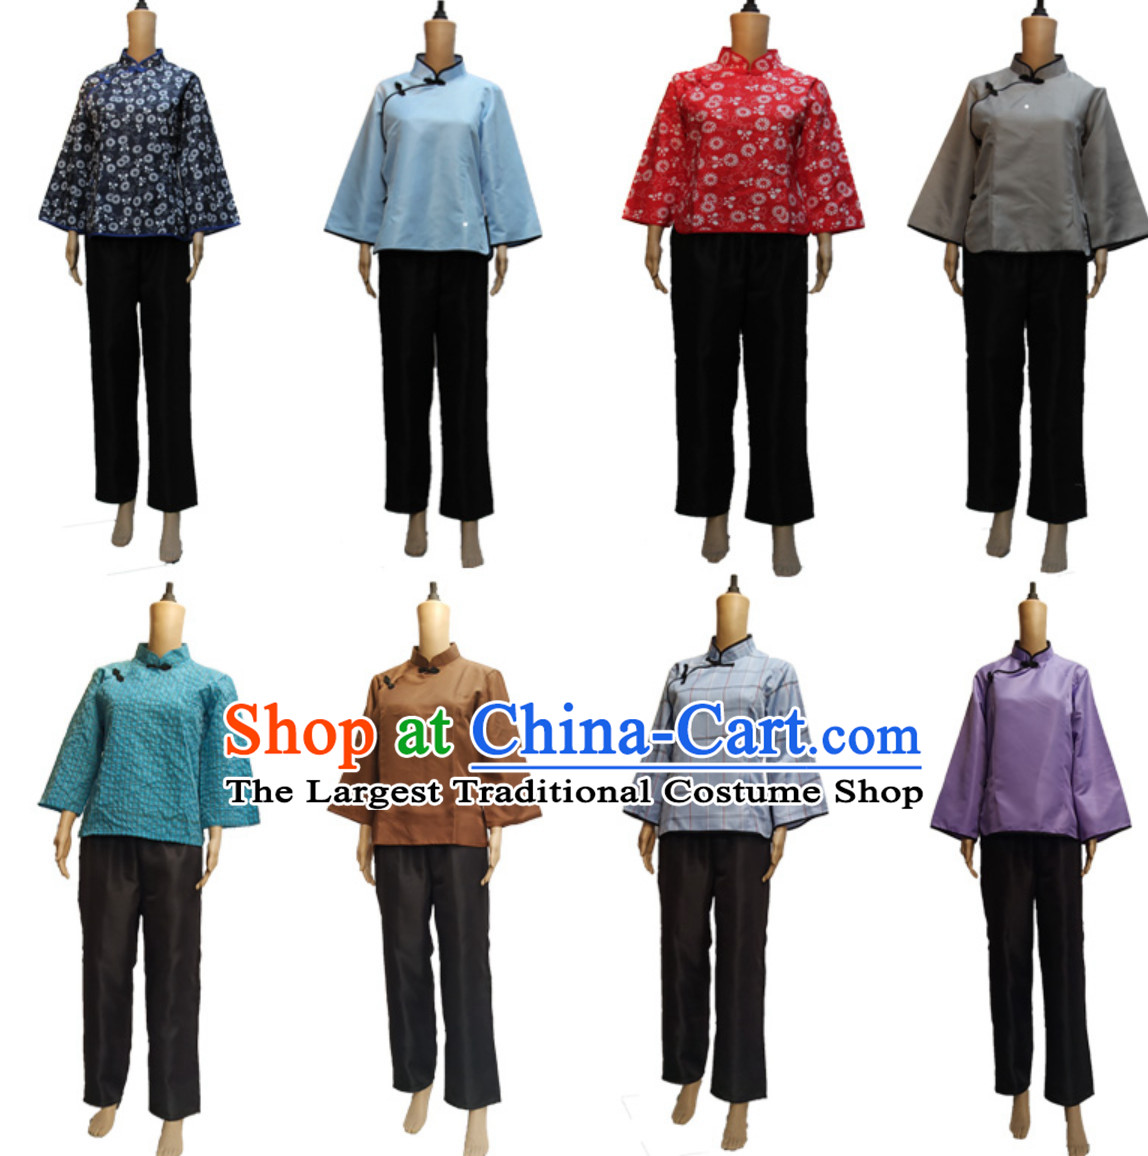 Traditional Chinese Poor People Costume Farmer Costumes Chinese Civilian Costumes for Women